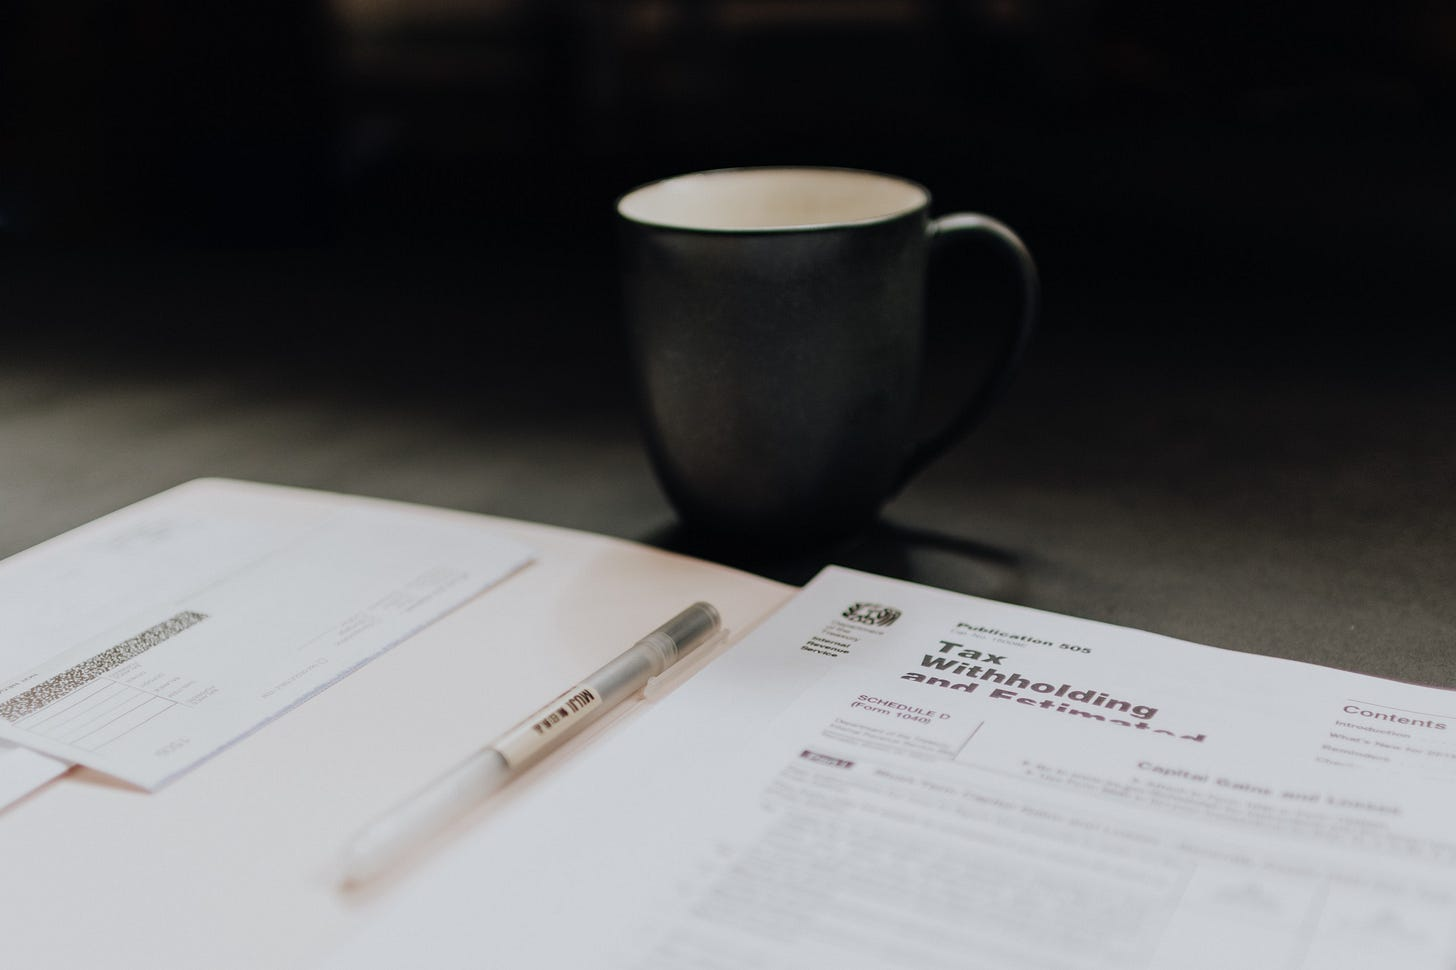 image of a cup of coffee beside tax forms for article by larry g maguire